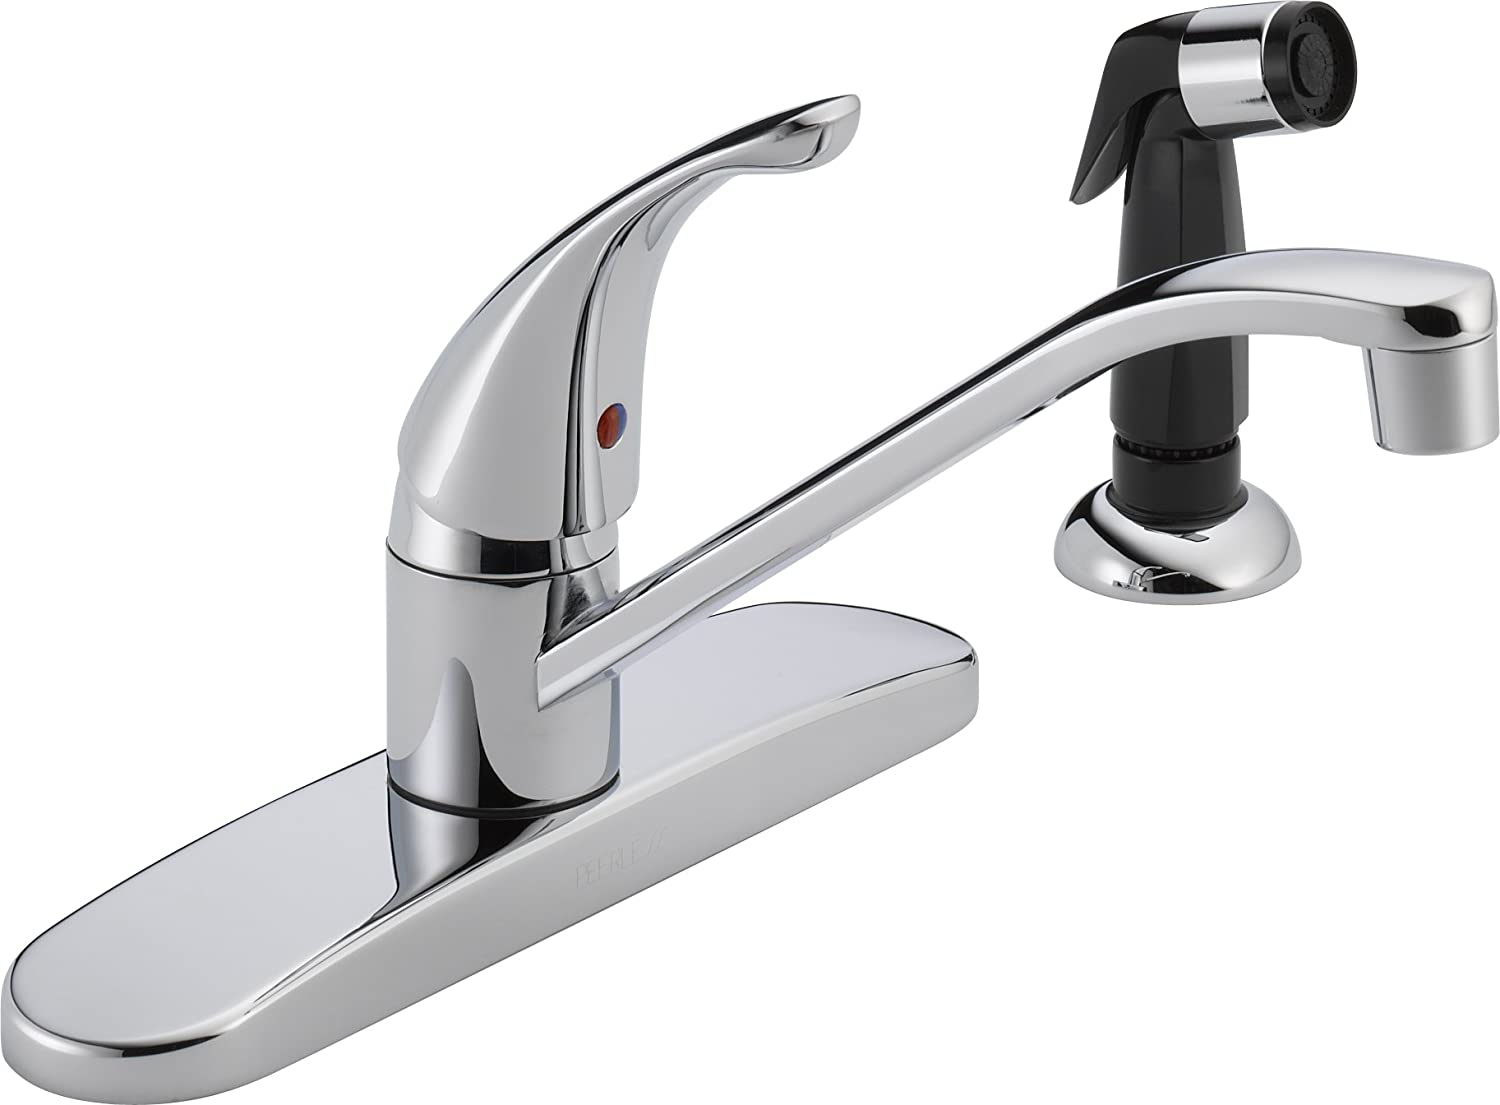 Peerless P115LF Classic Kitchen Faucet